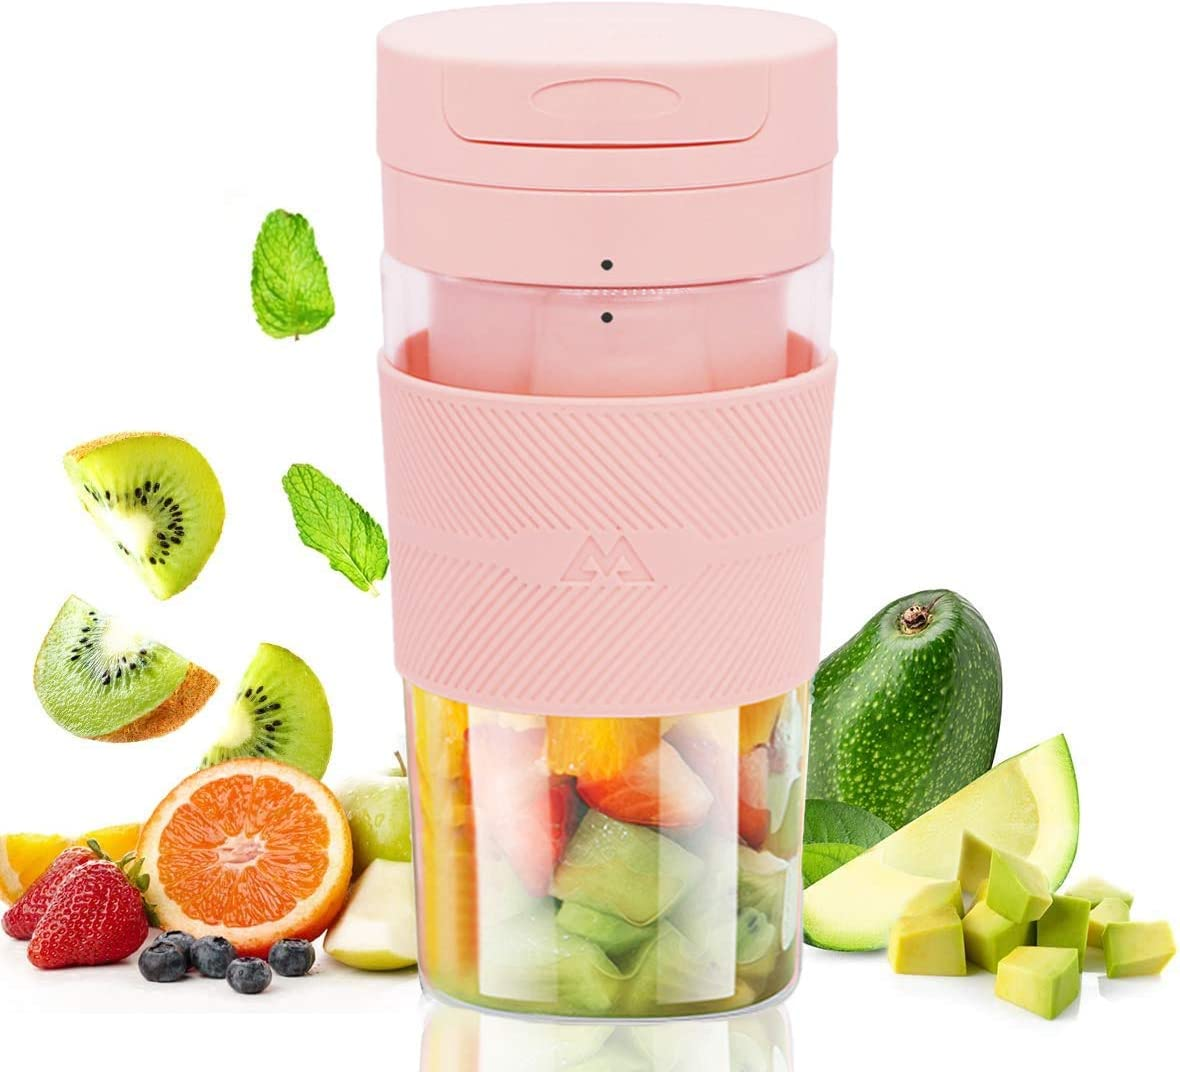 Miceshu Portable Blender, Beach Personal Blender for Shakes and Smoothies, Mini Mixer, Rechargeable Fruit Blender Cup , 10oz/300ml for Home, Office, Sports, Travel, Outdoors BPA Free